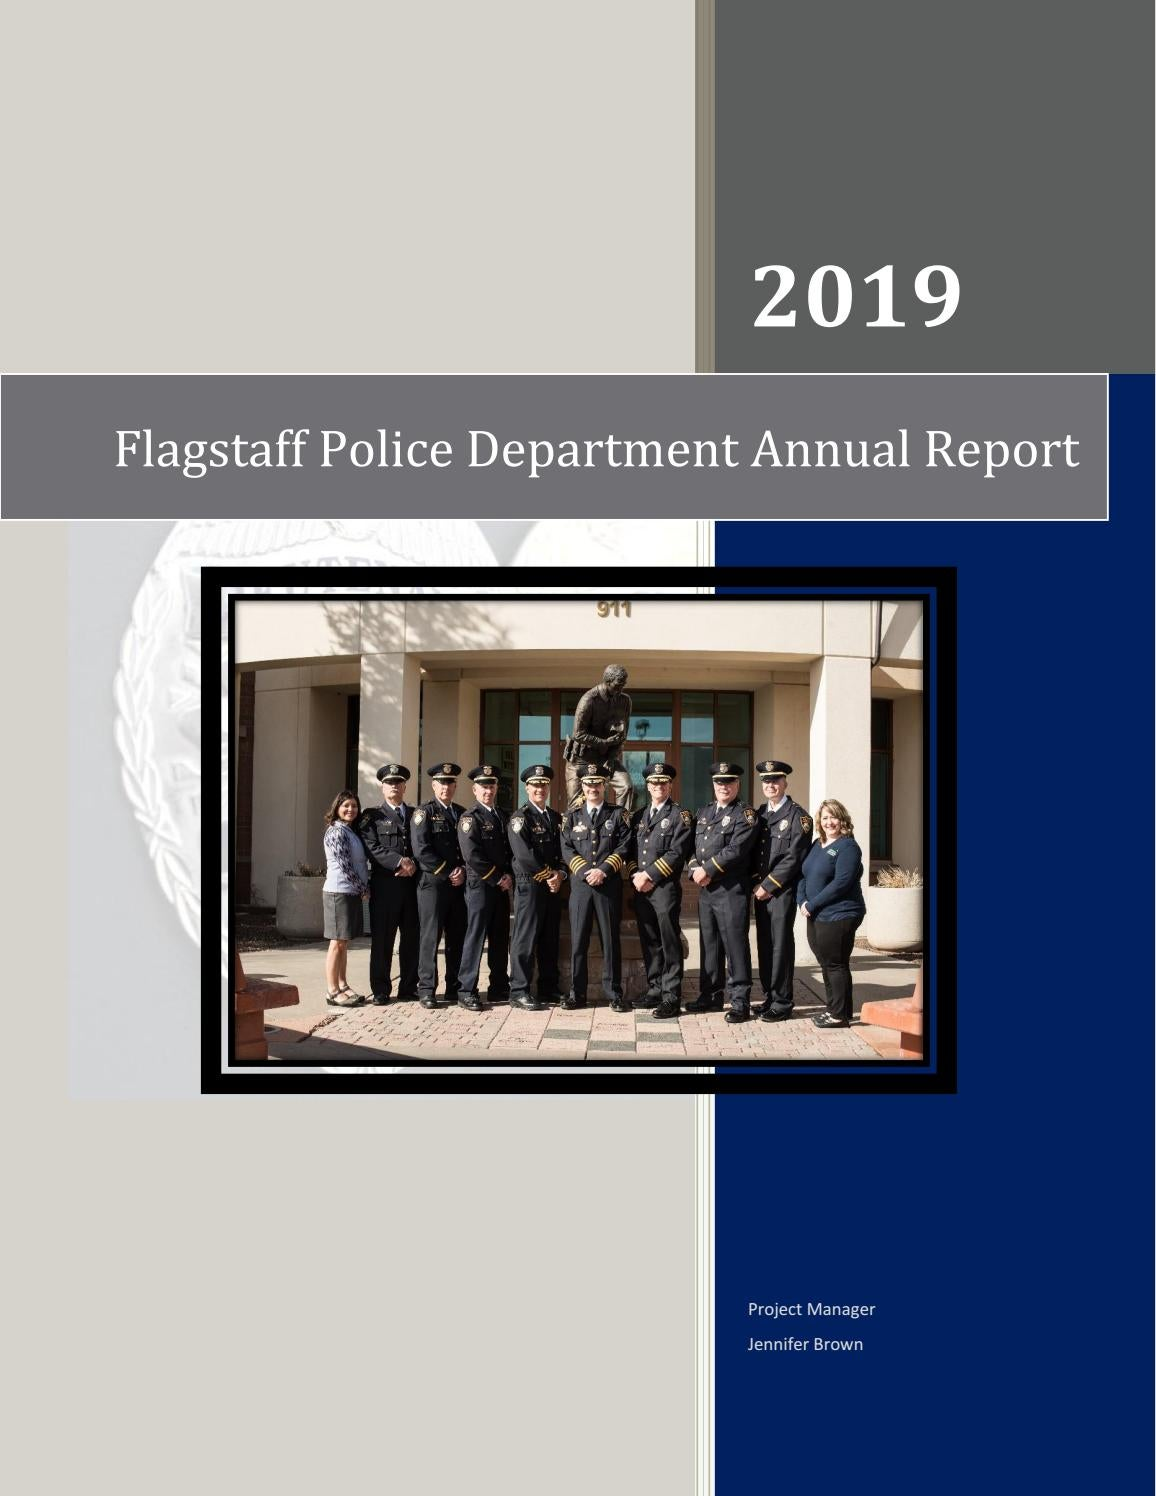 2019 Flagstaff Police Department Annual Report By Jbrown22599 Issuu